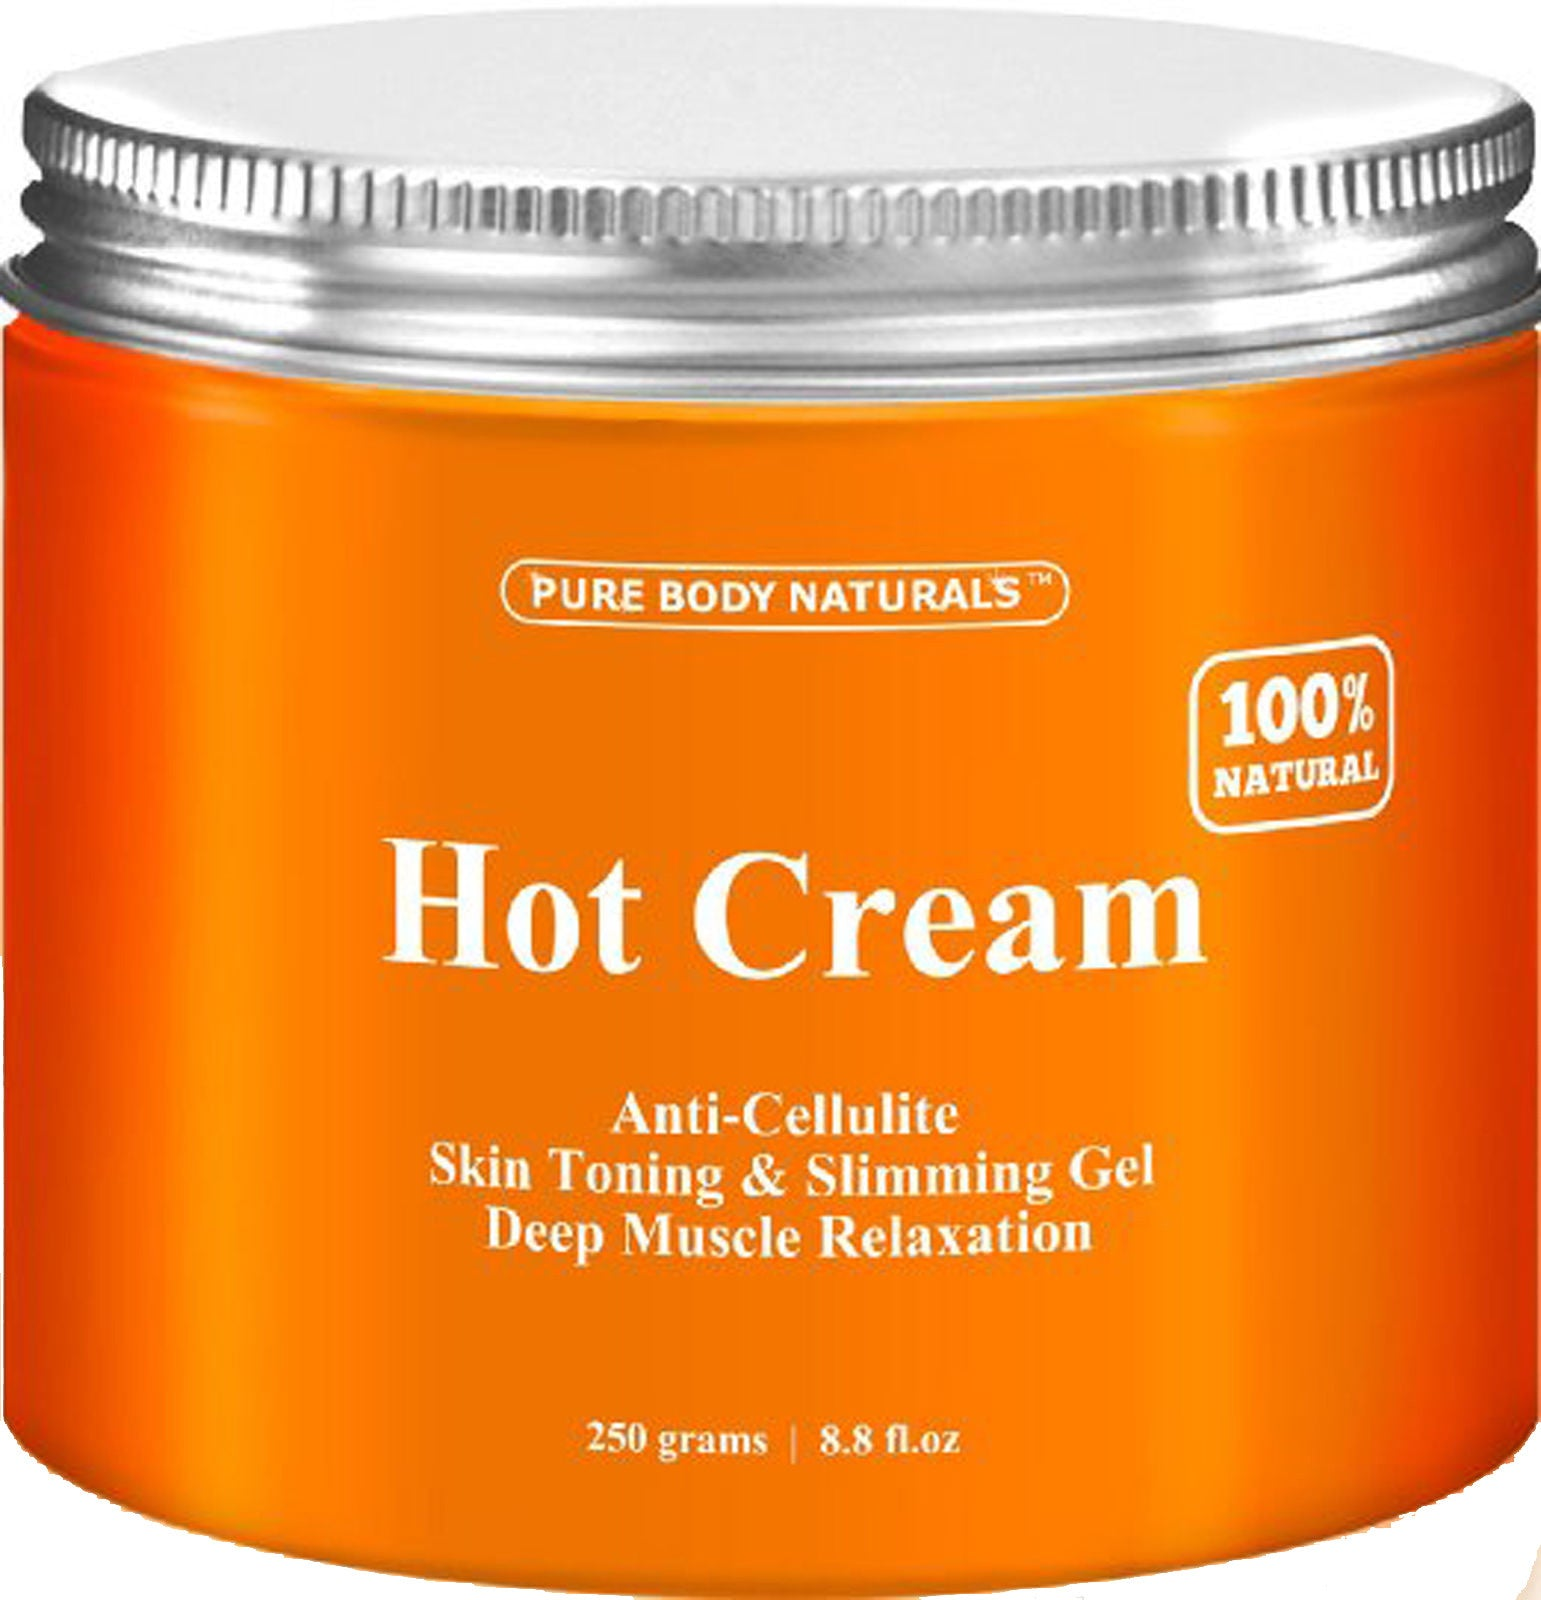 Anti-Cellulite & Muscle Relaxation Cream - 100% Natural